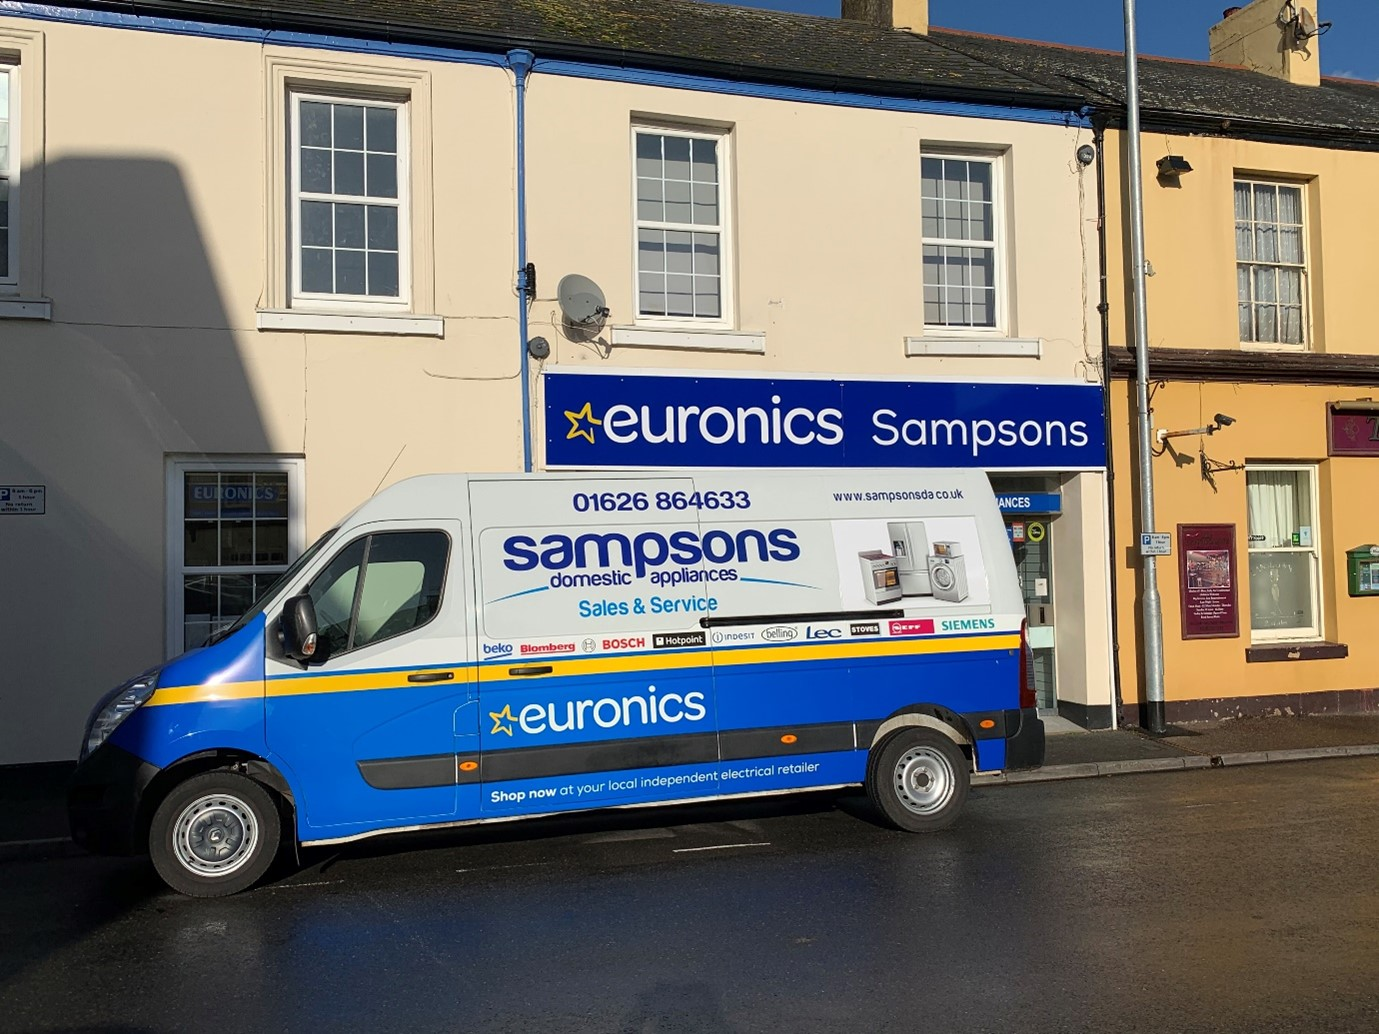 Sampsons Domestic Appliances Ltd